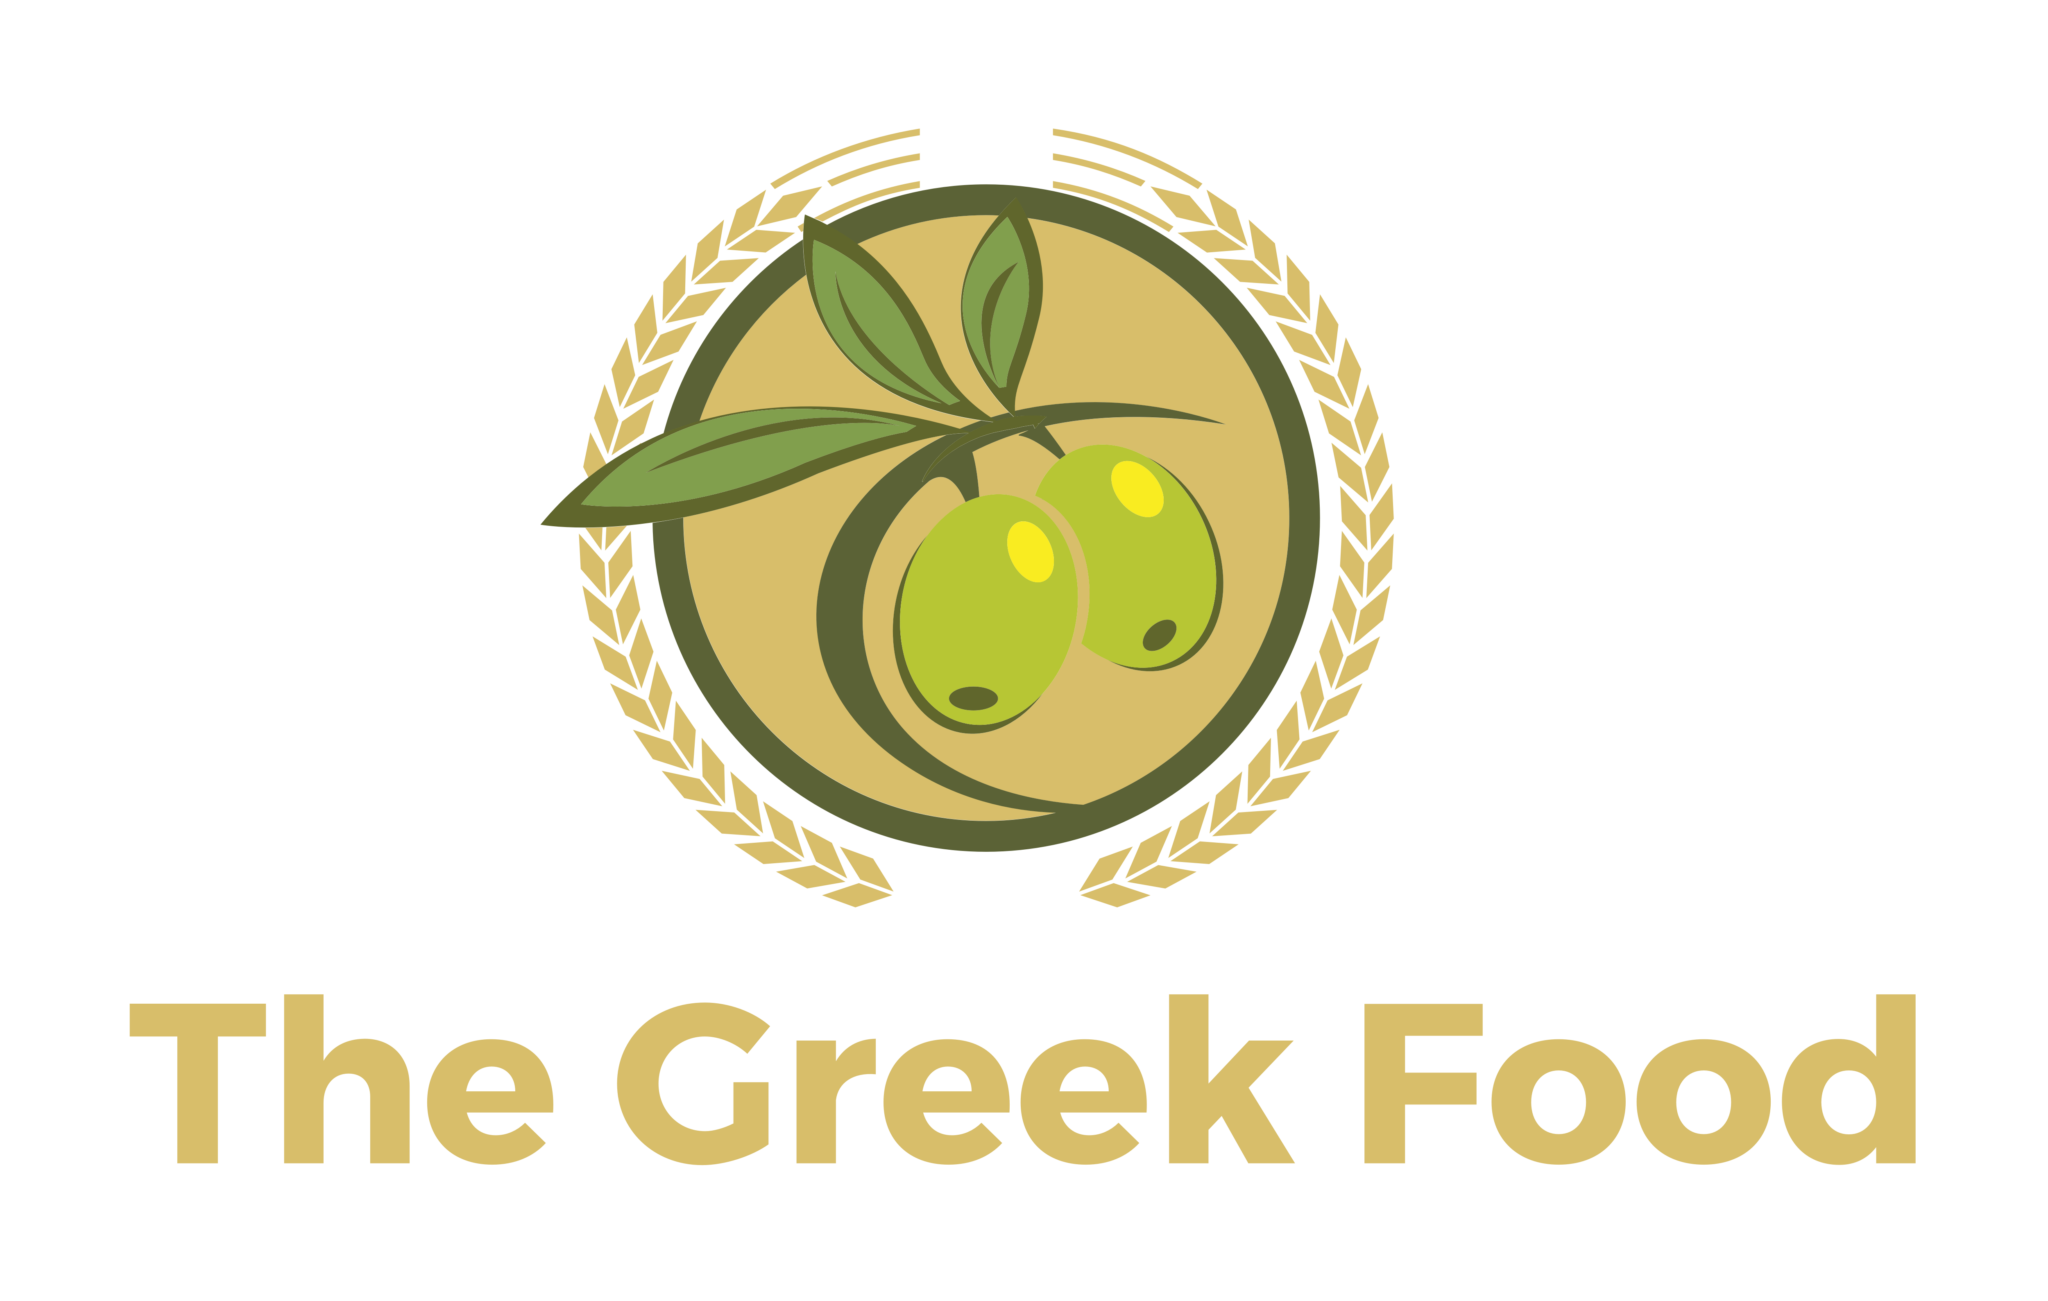 The Greek Food